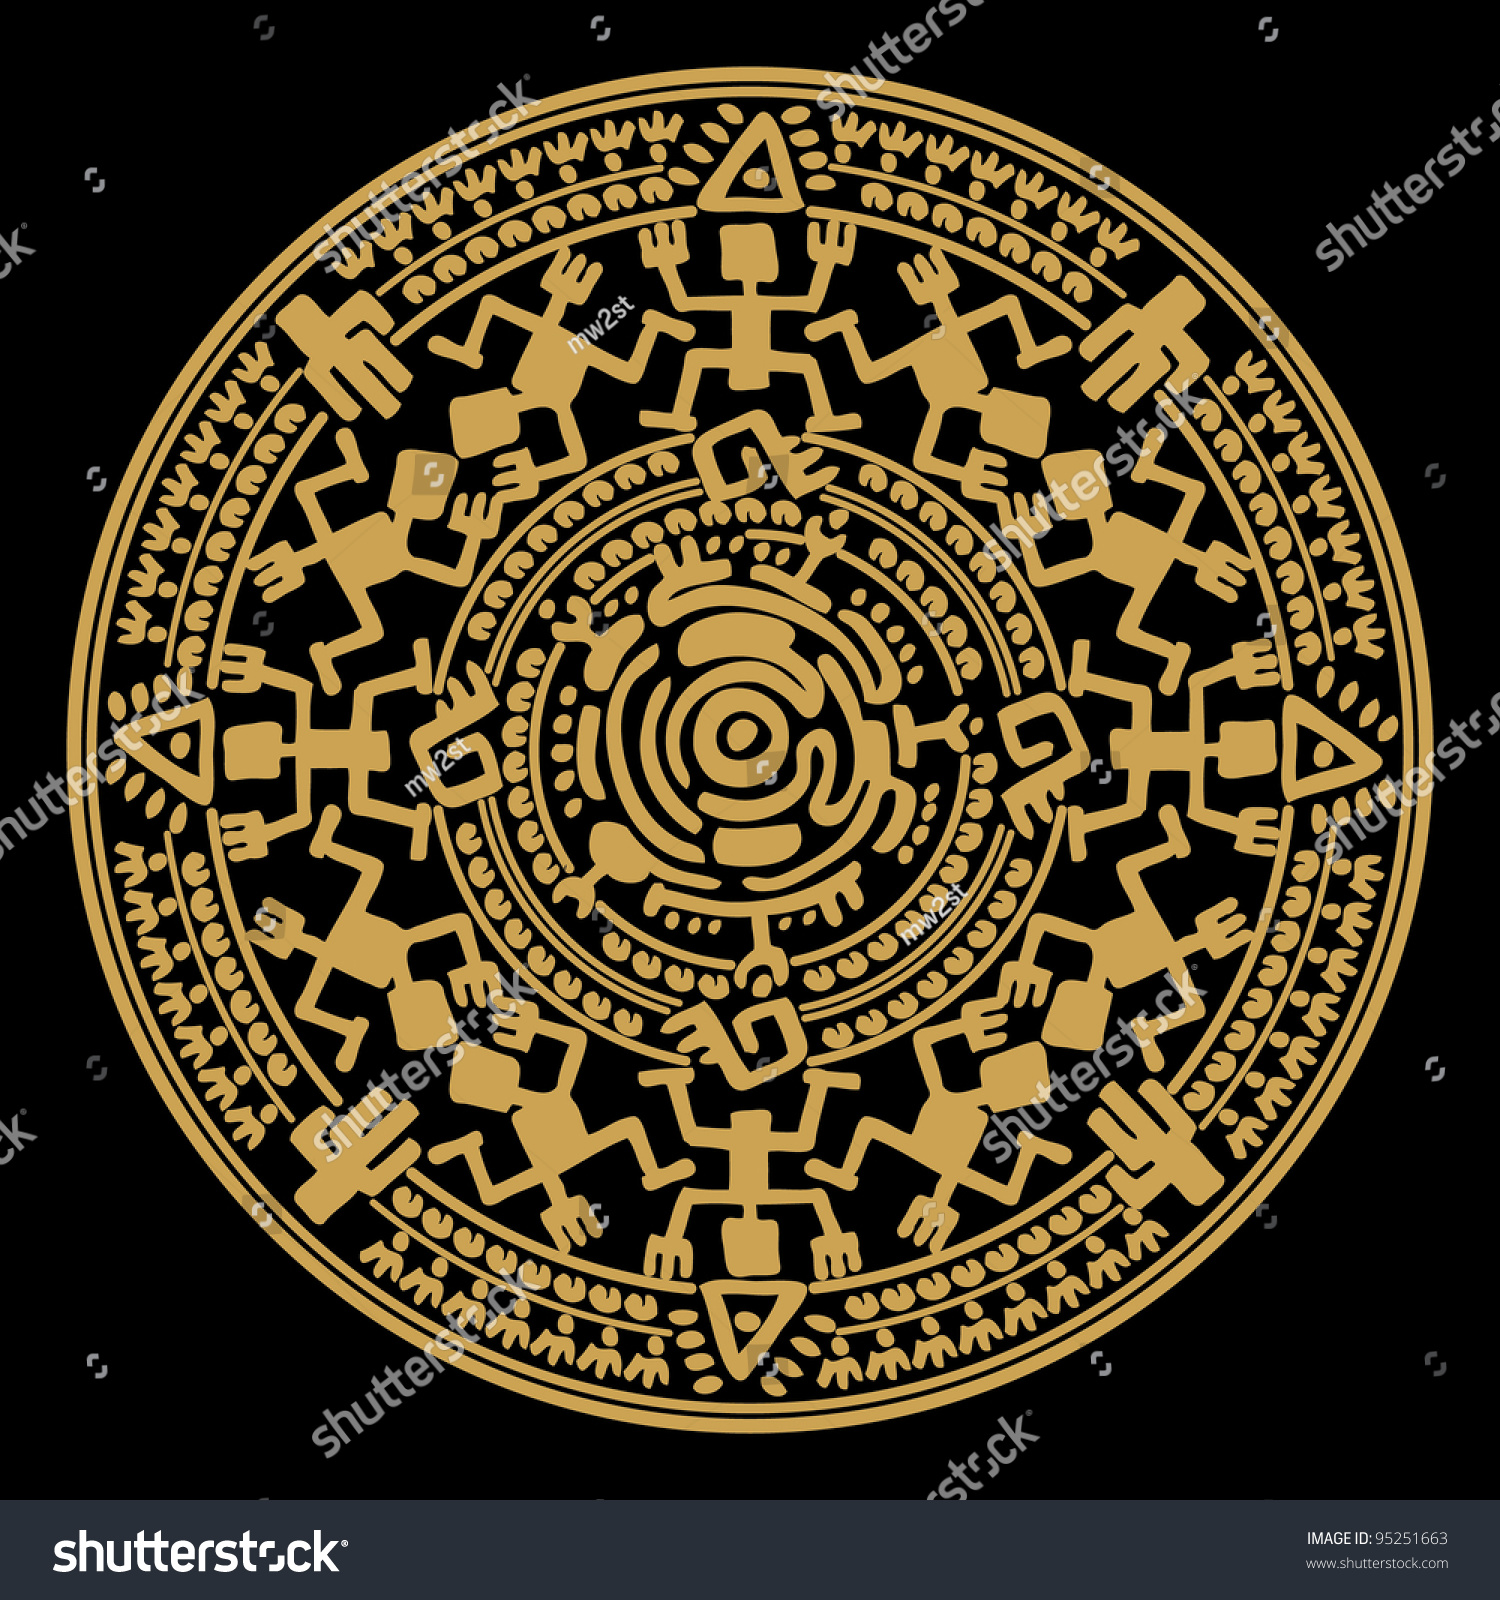 circle reminiscent mayan calendar stock illustration 95251663